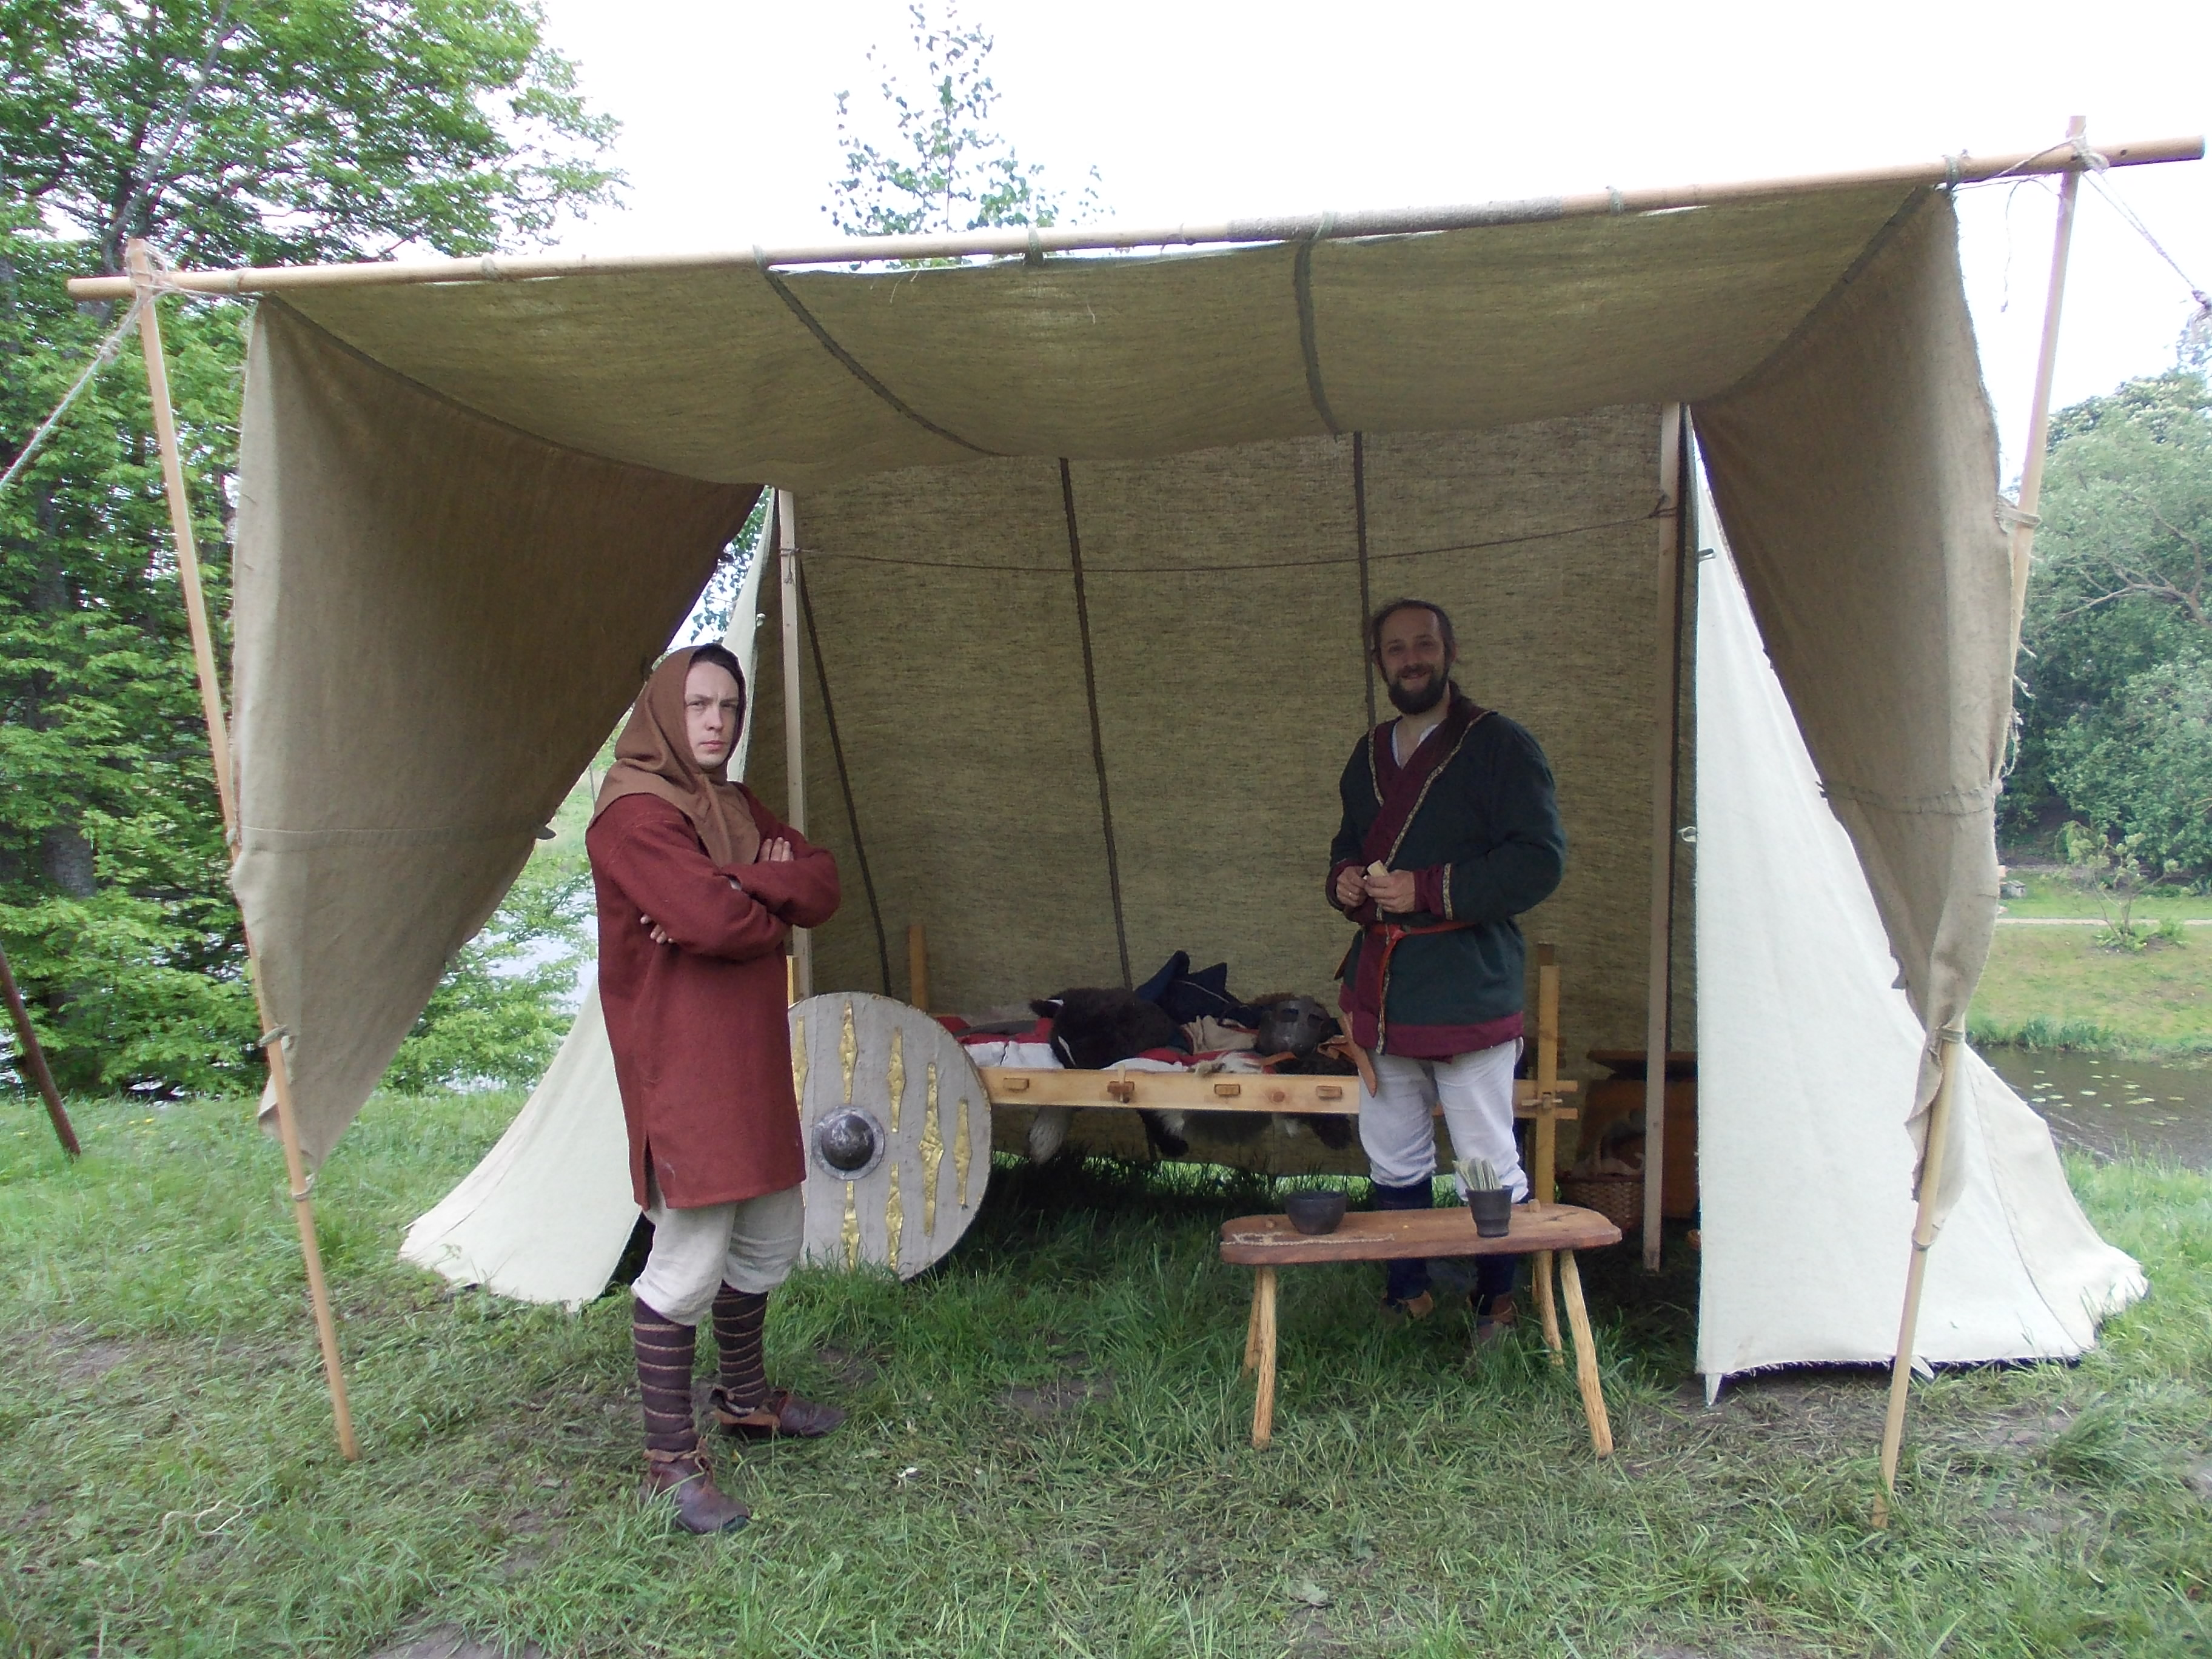 Vendel period tent and bed